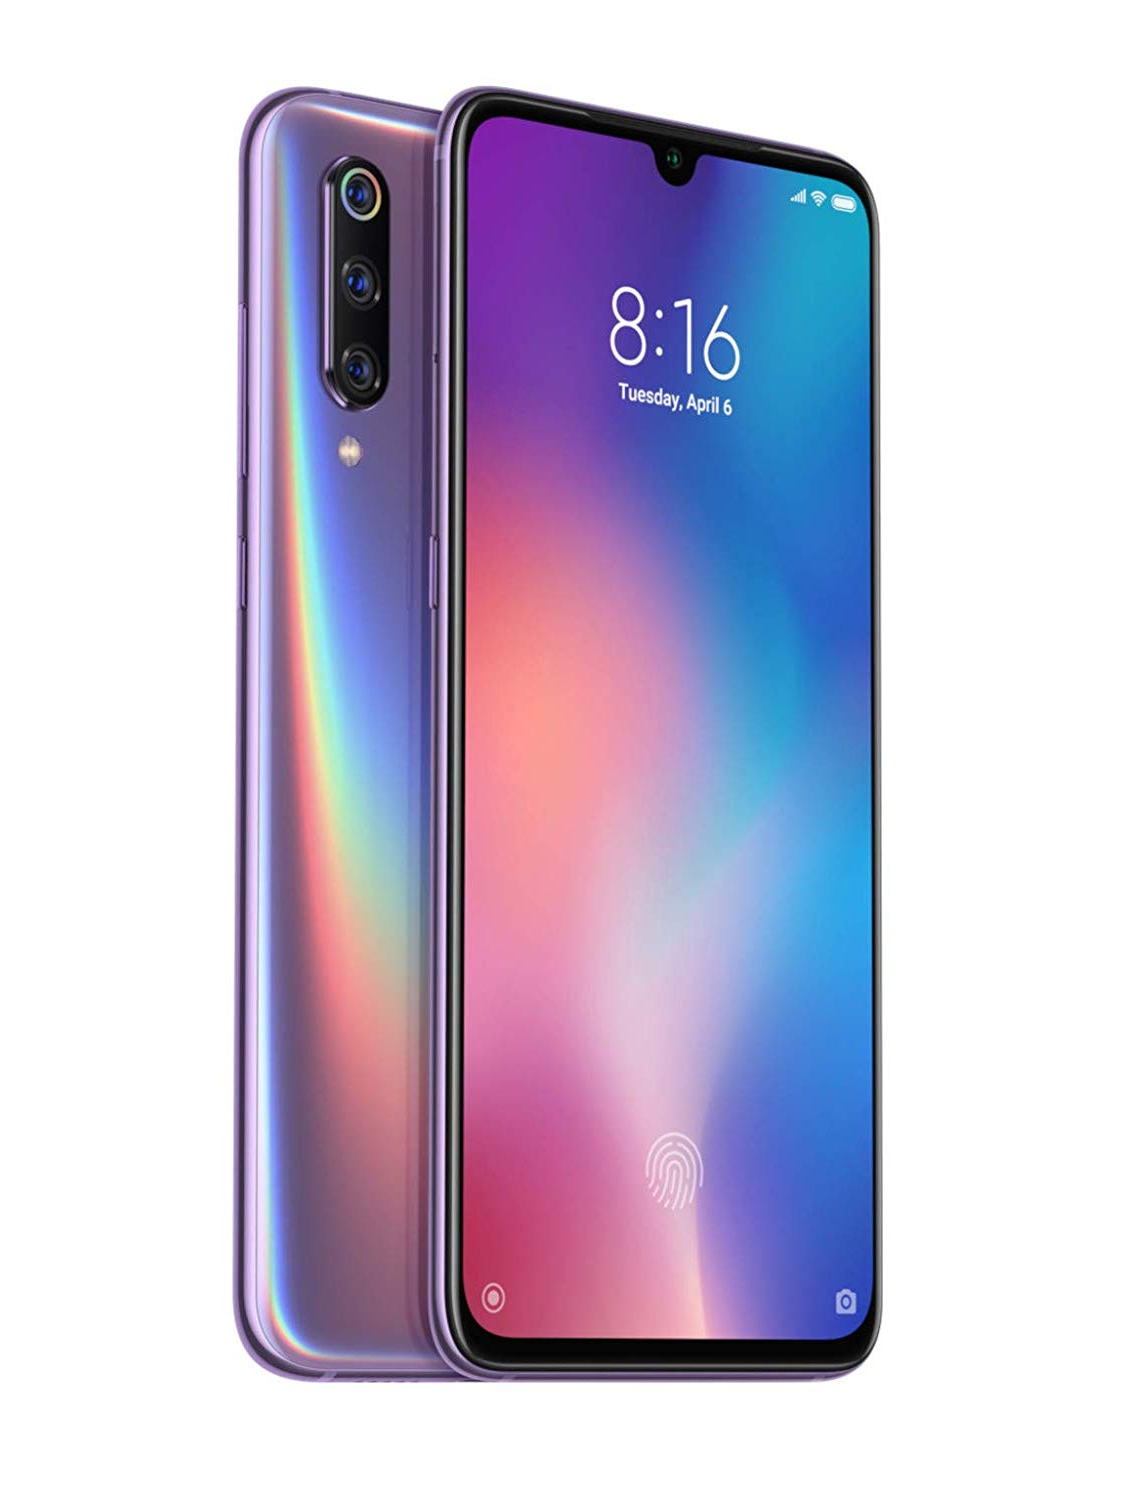 Xiaomi Mi 9, Global Version, Dual SIM, Violet Color, 64 Hard GB ROM, 6 Hard GB RAM, Screen From 6,39